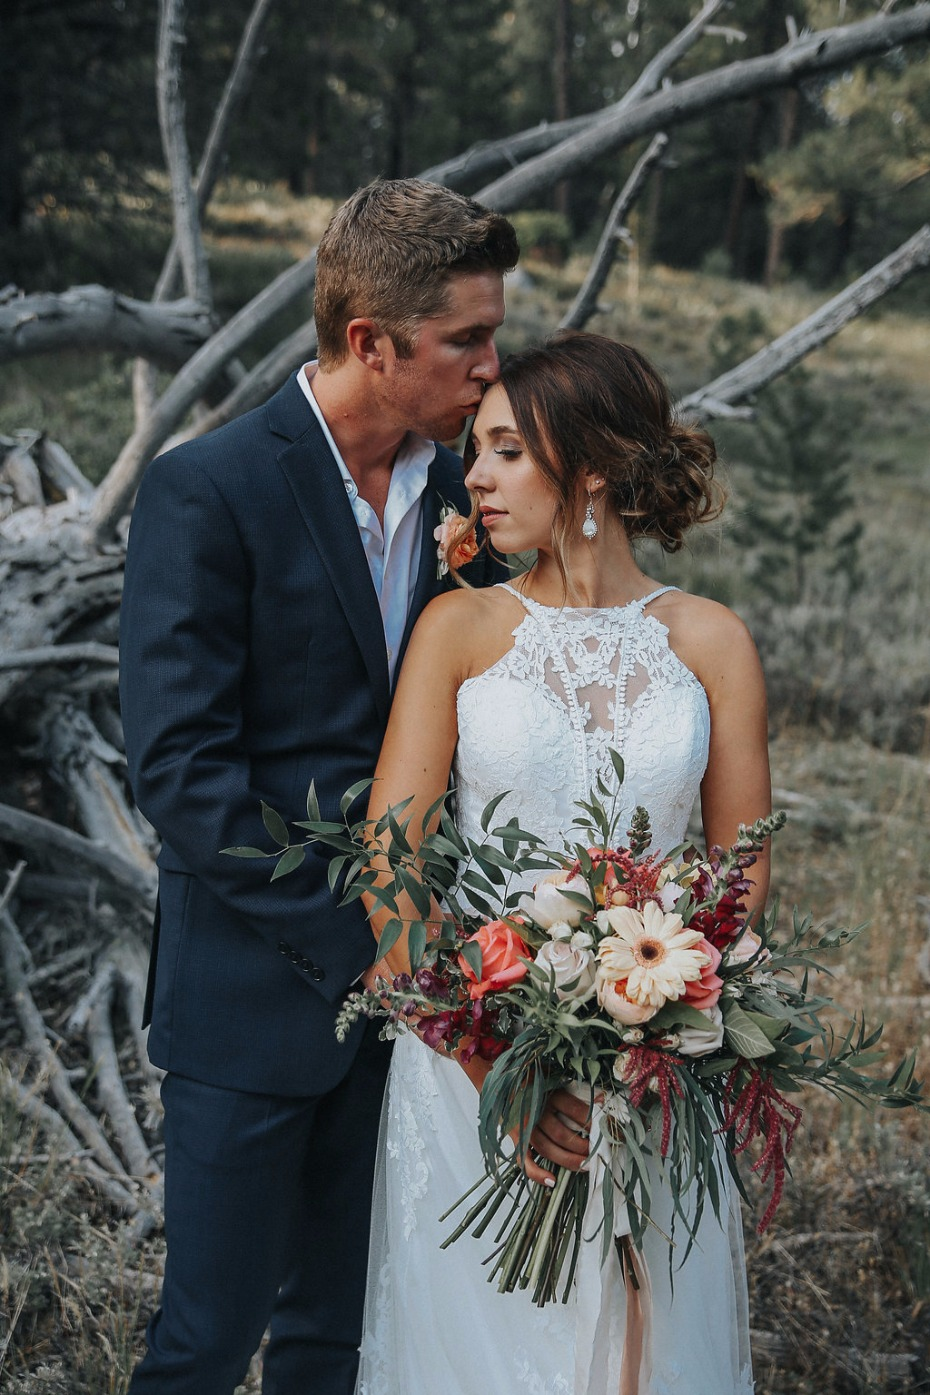 rustic chic bride and groom wedding photo